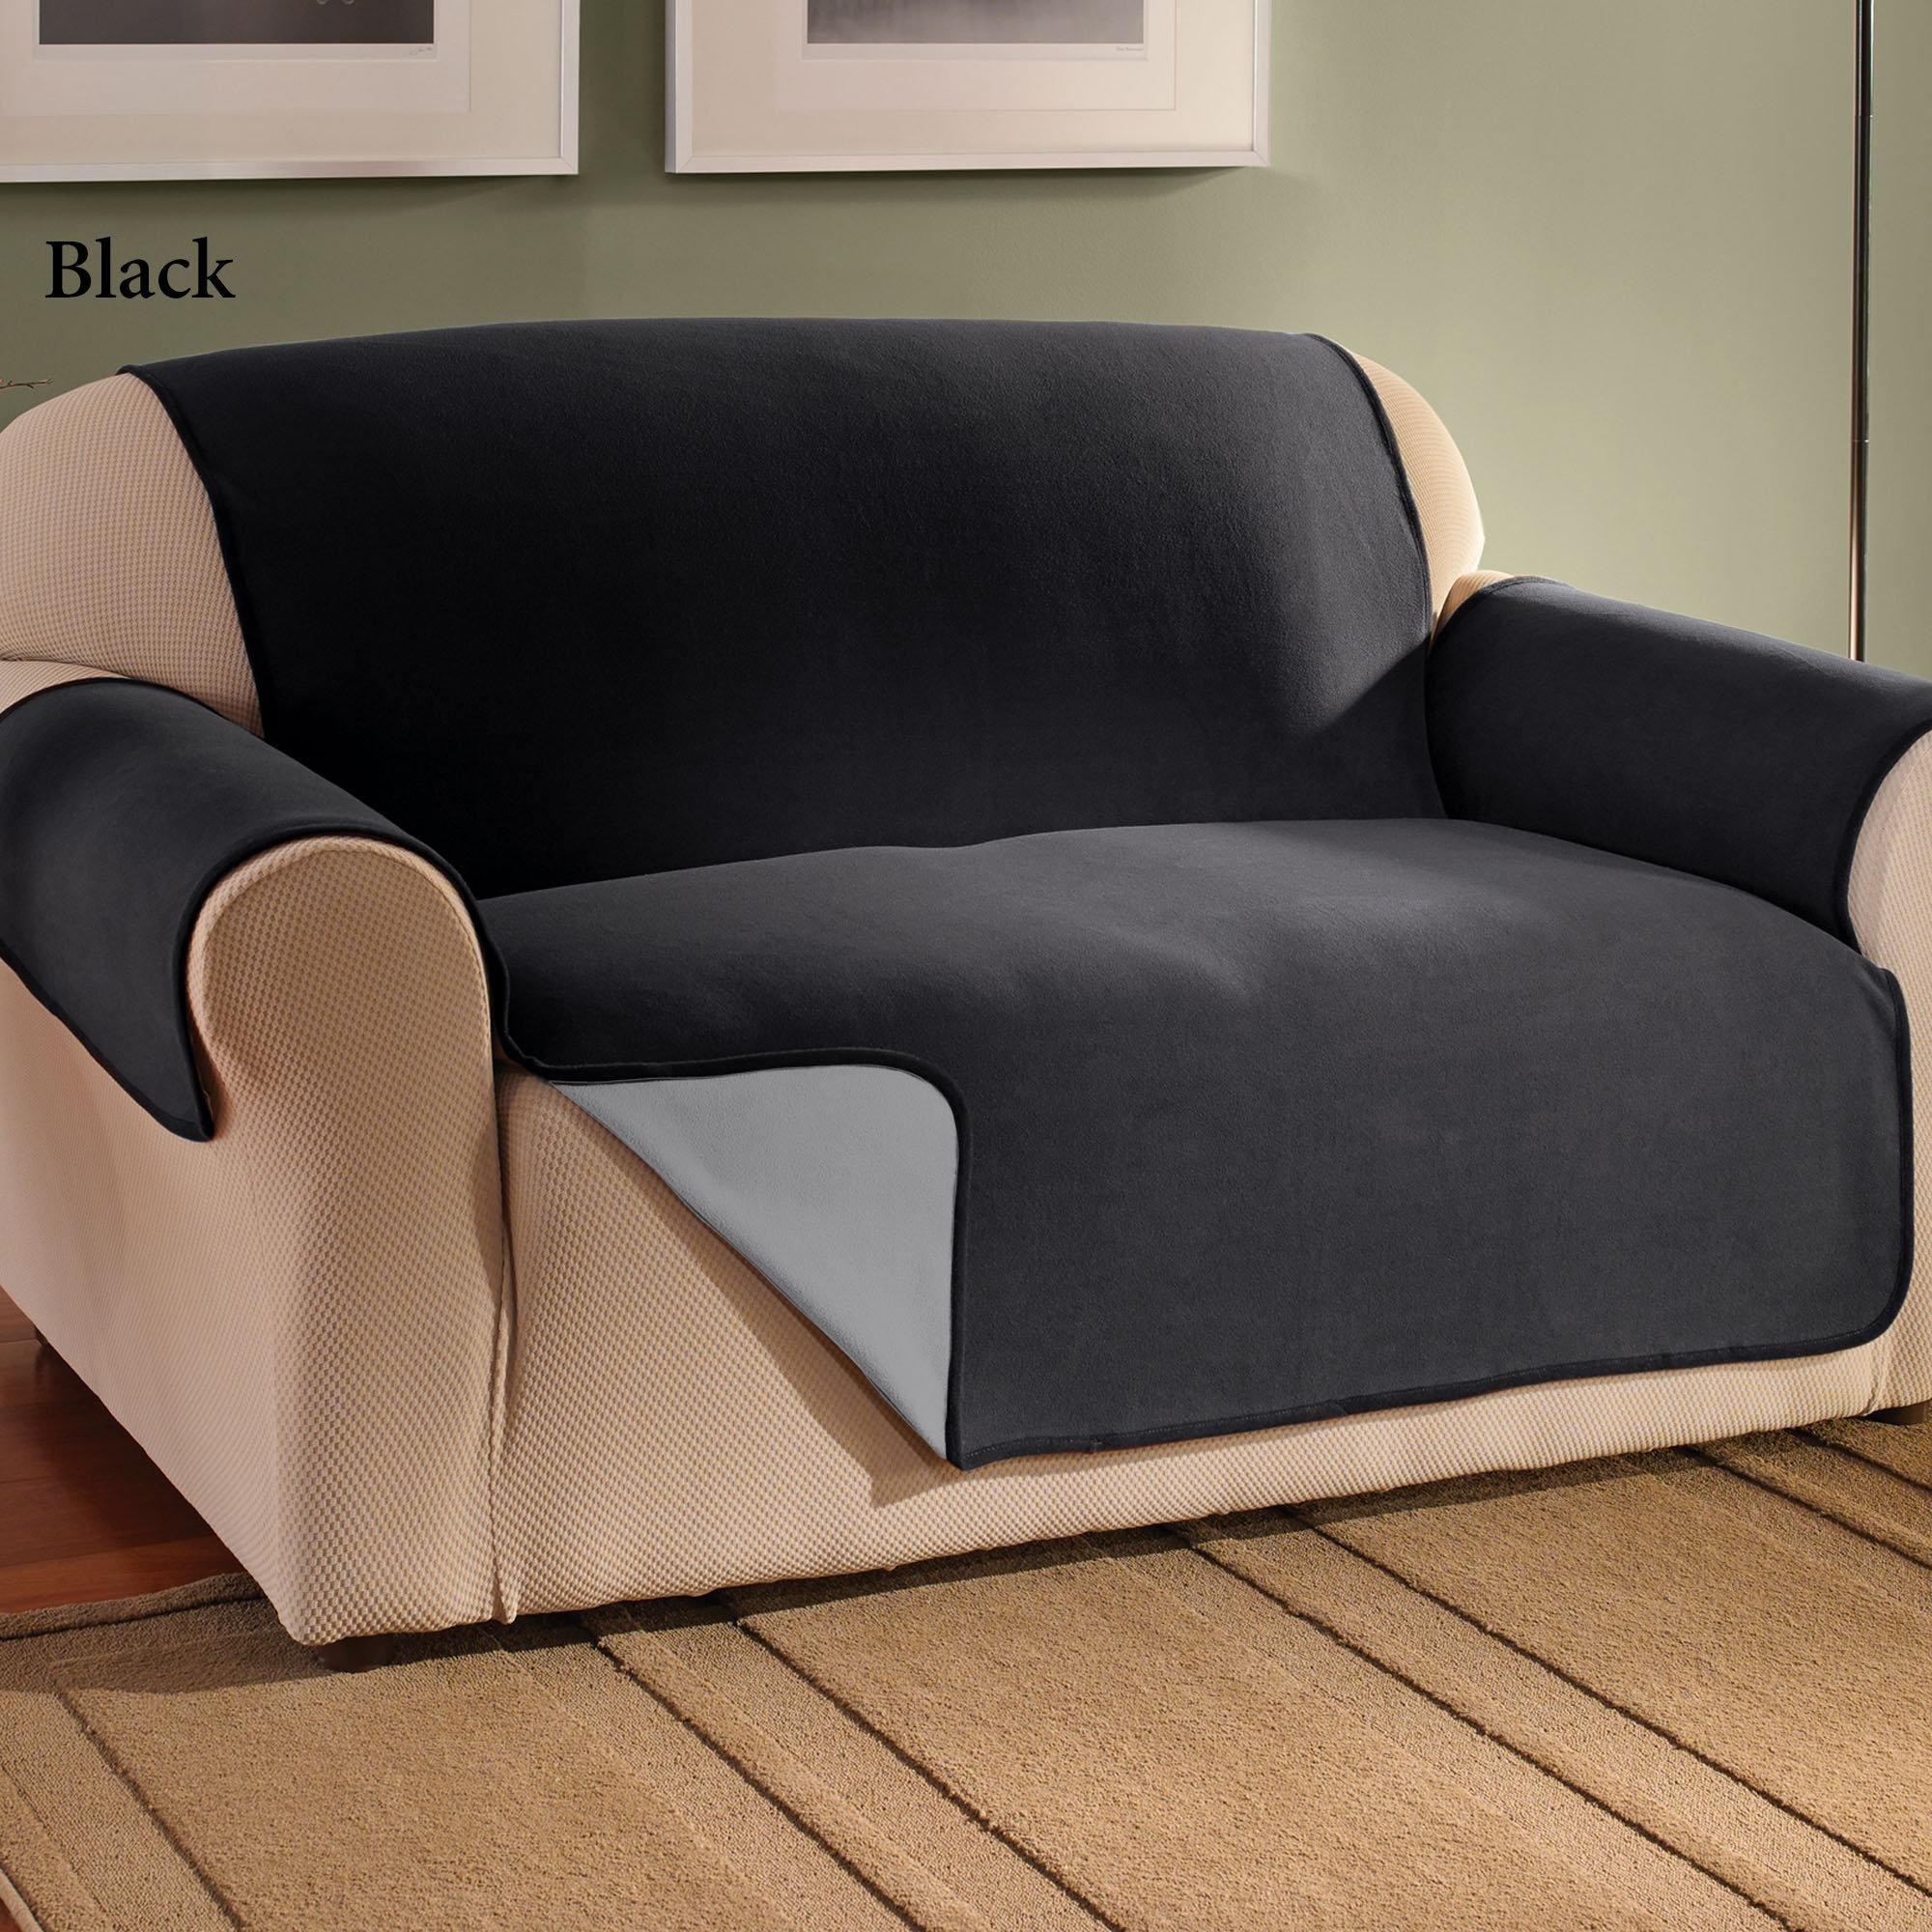 Sofas : Fabulous Sectional Couch Slipcovers Leather Armchair For Slipcover For Leather Sectional Sofas (Image 20 of 21)